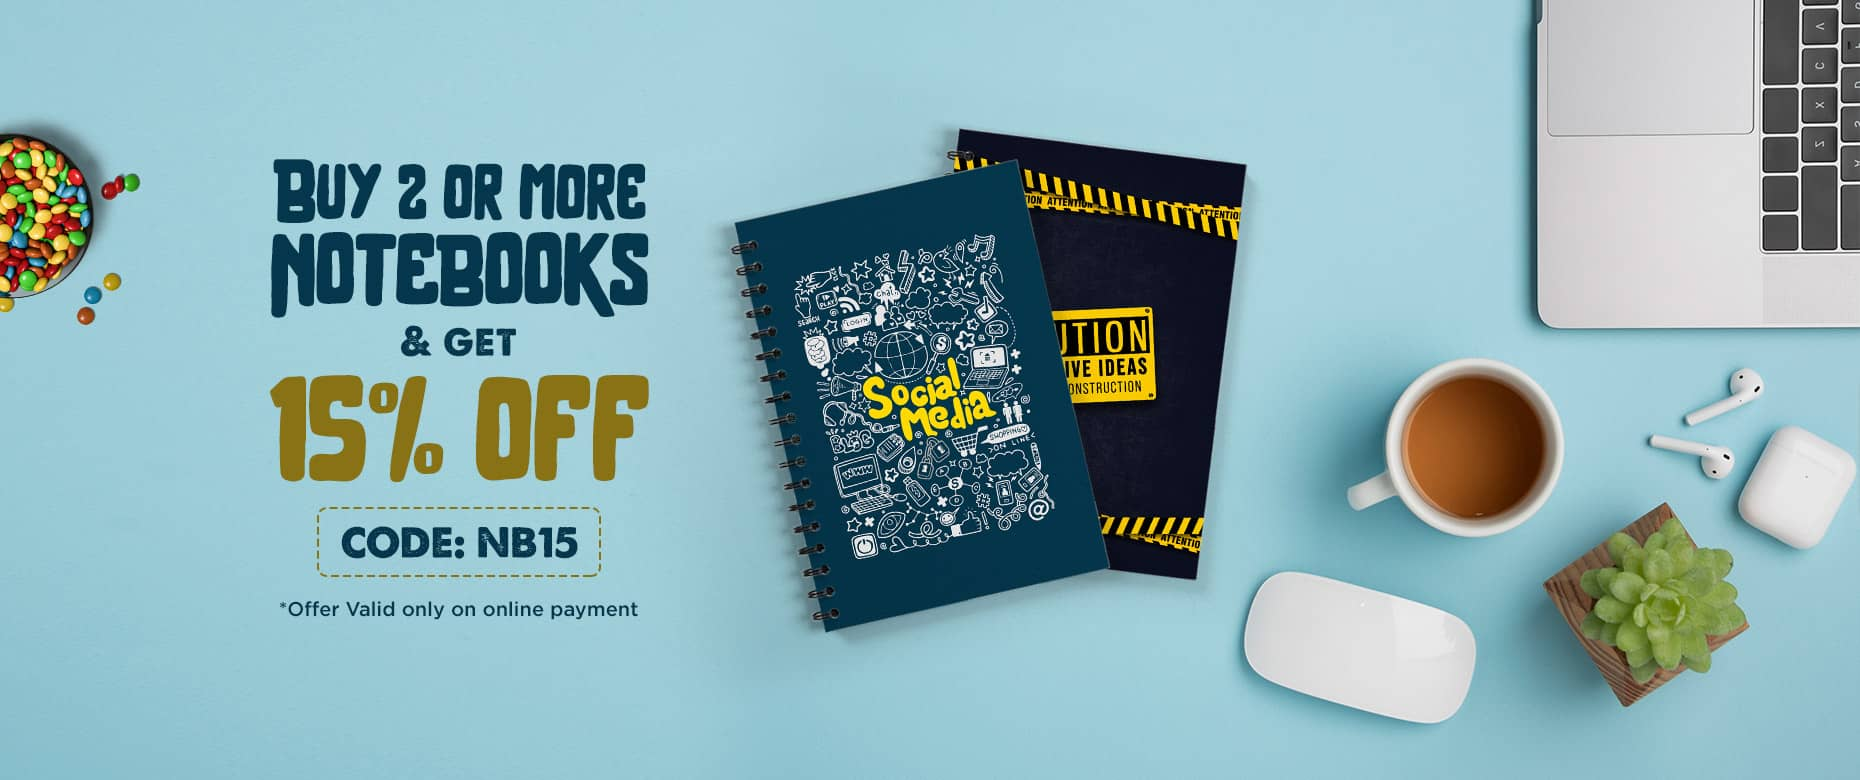 Offer 15% Off on Notebooks